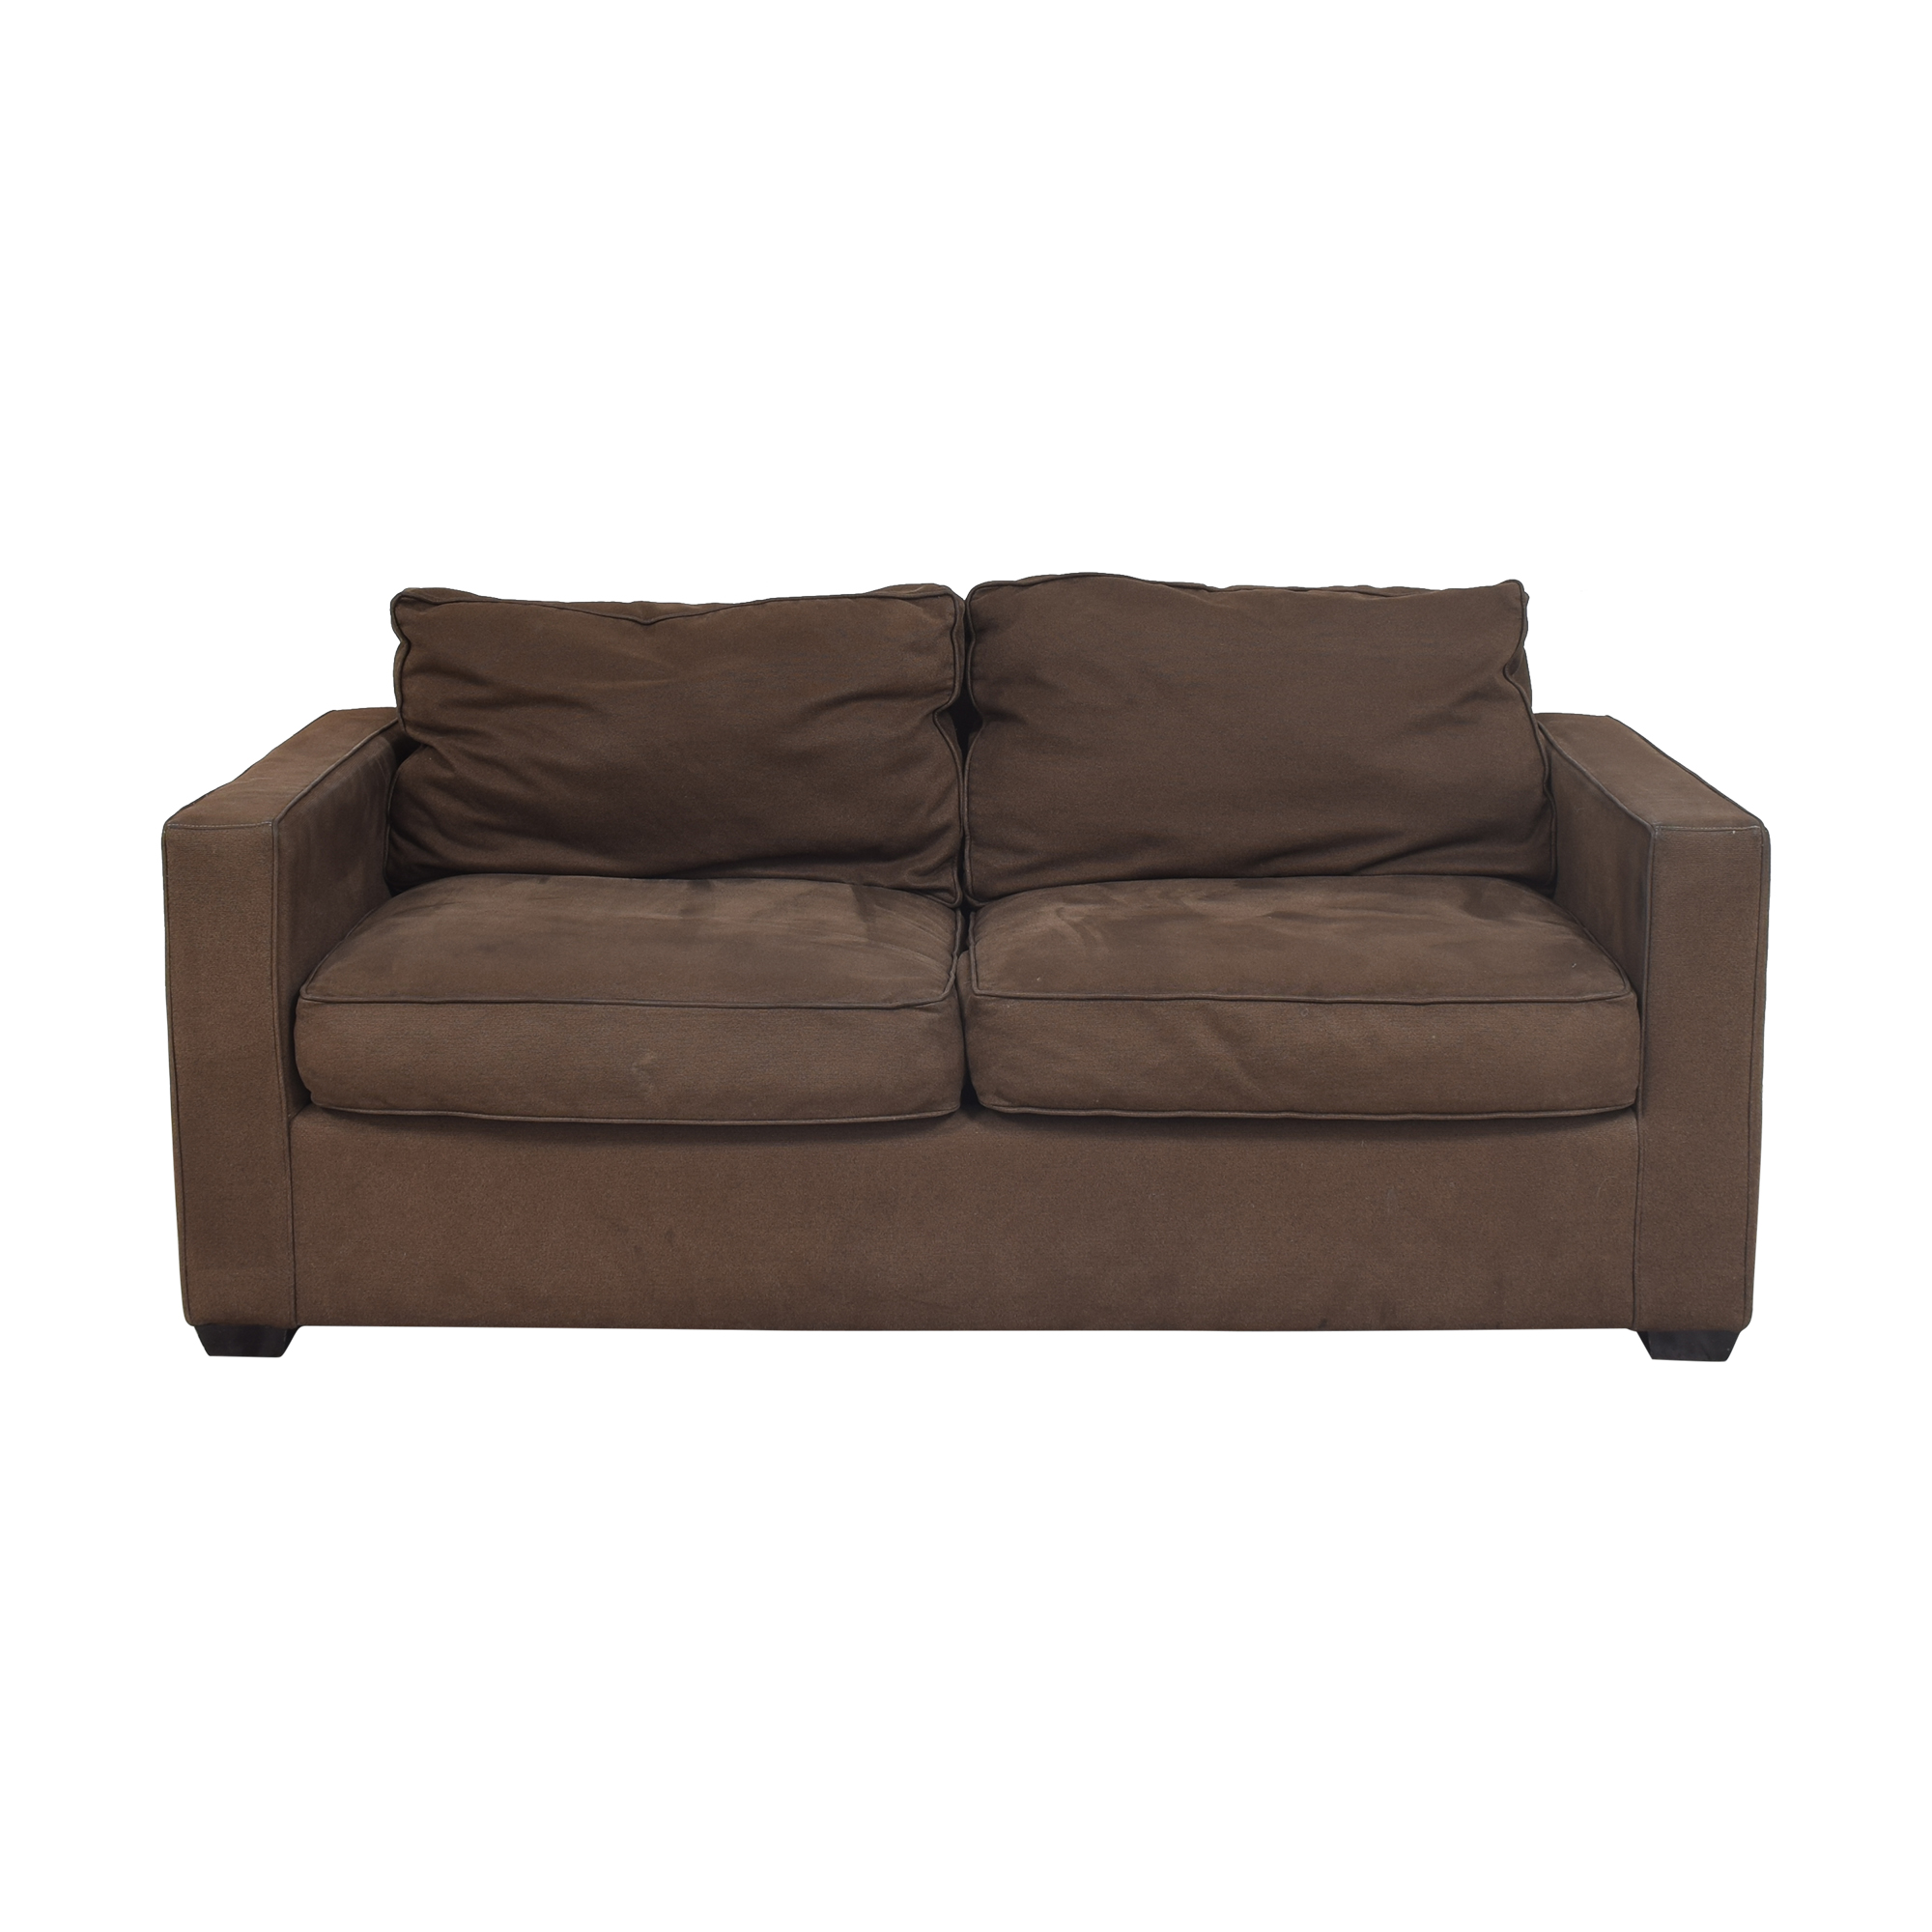 Room & Board Room & Board York Two Cushion Sofa price